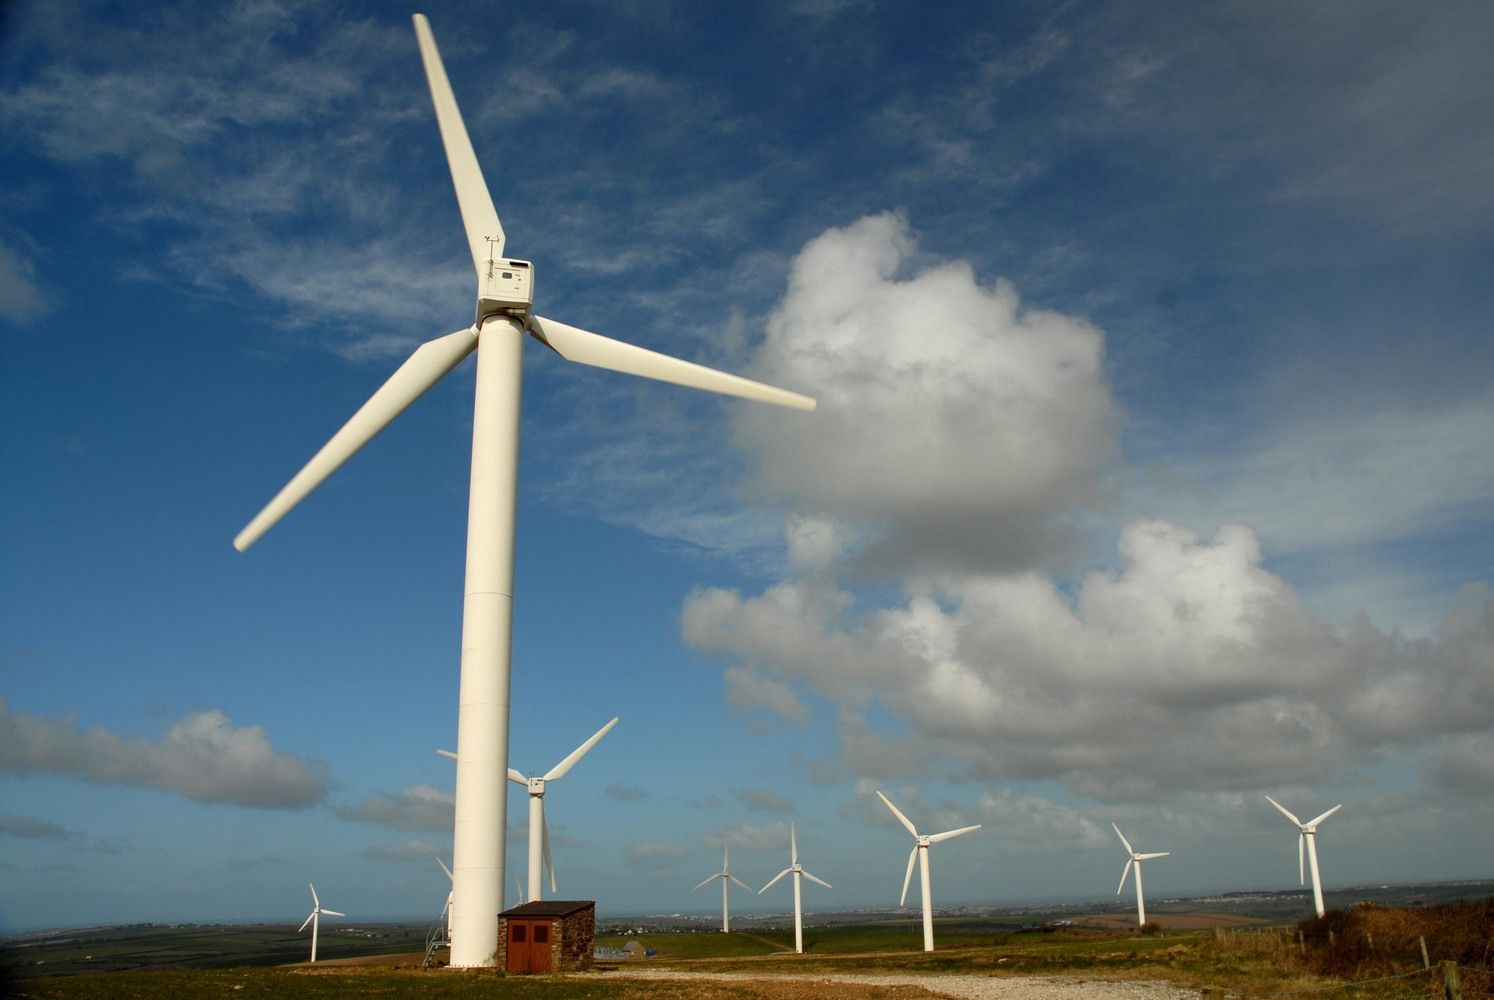 World's Biggest Wind Turbine Maker Sets Sights on New Markets